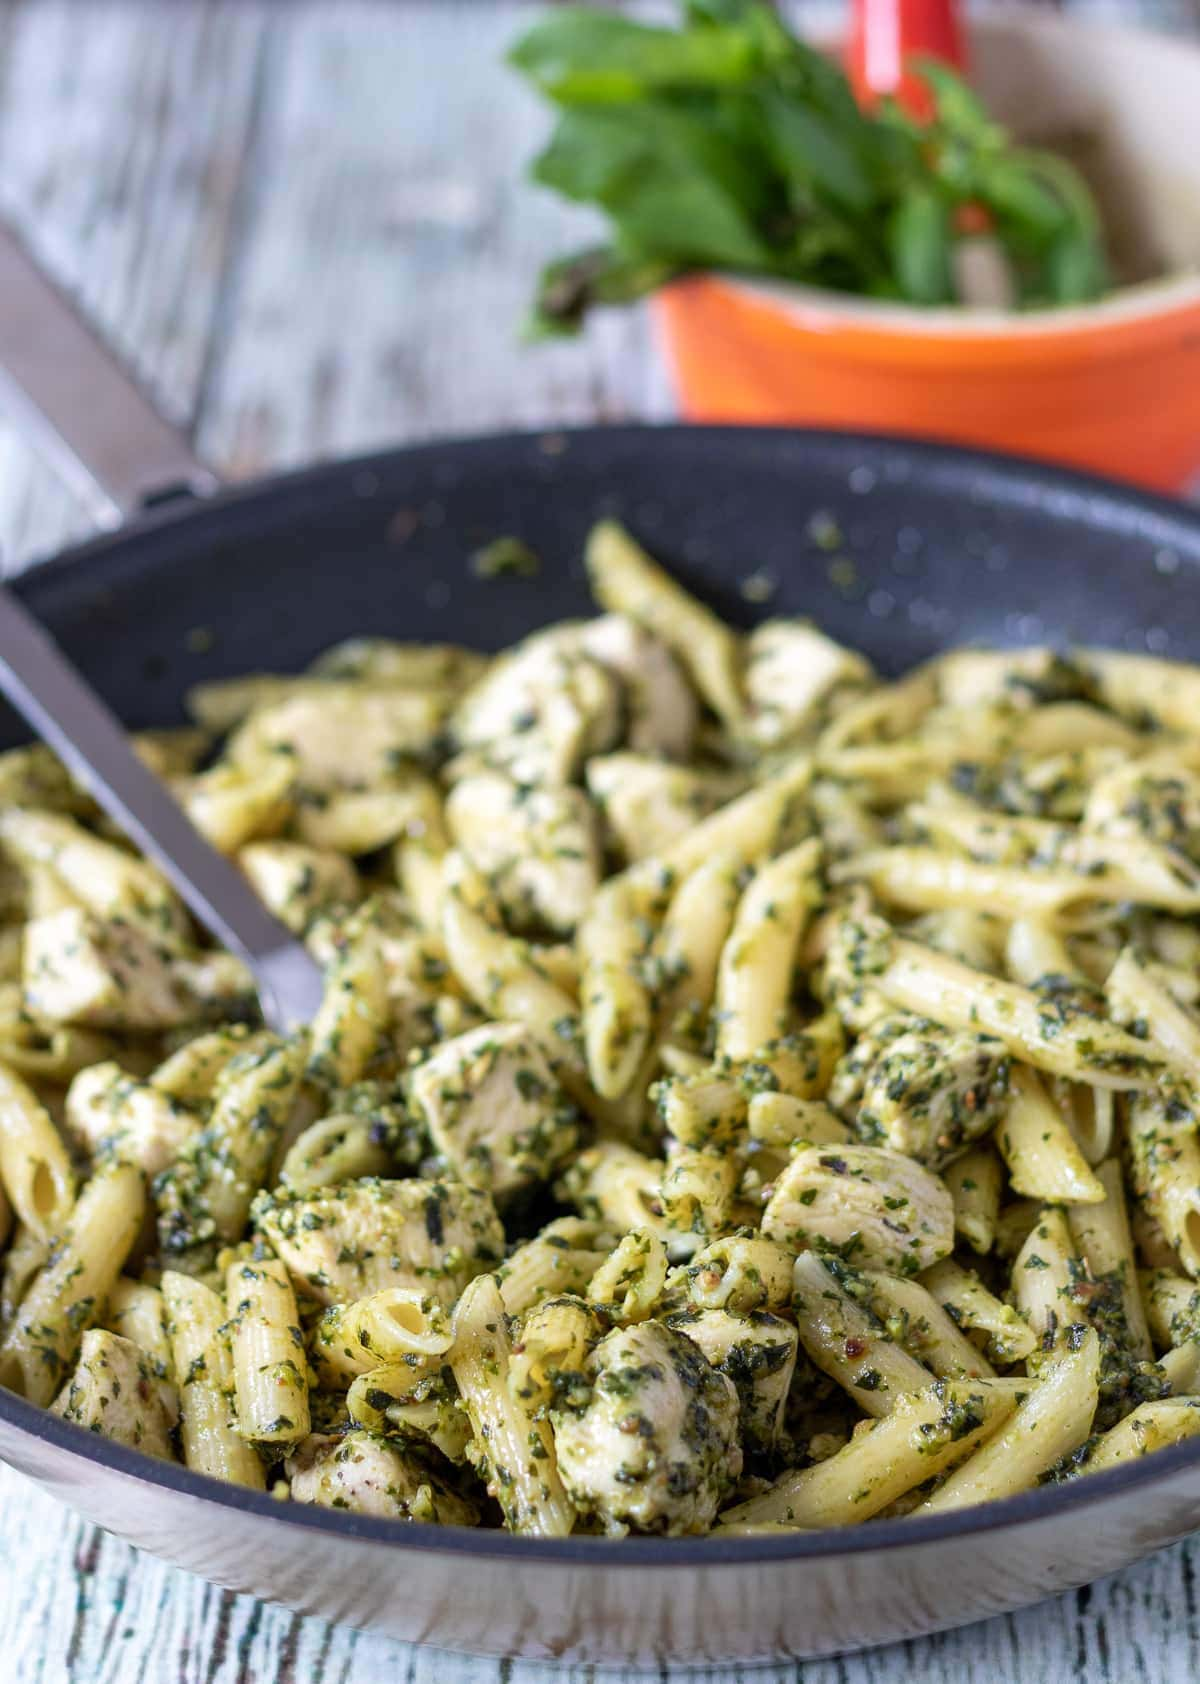 Close up of a pan of cooked chicken pesto pasta with a serving spoon in ready to serve. Pestle and mortar in the background.